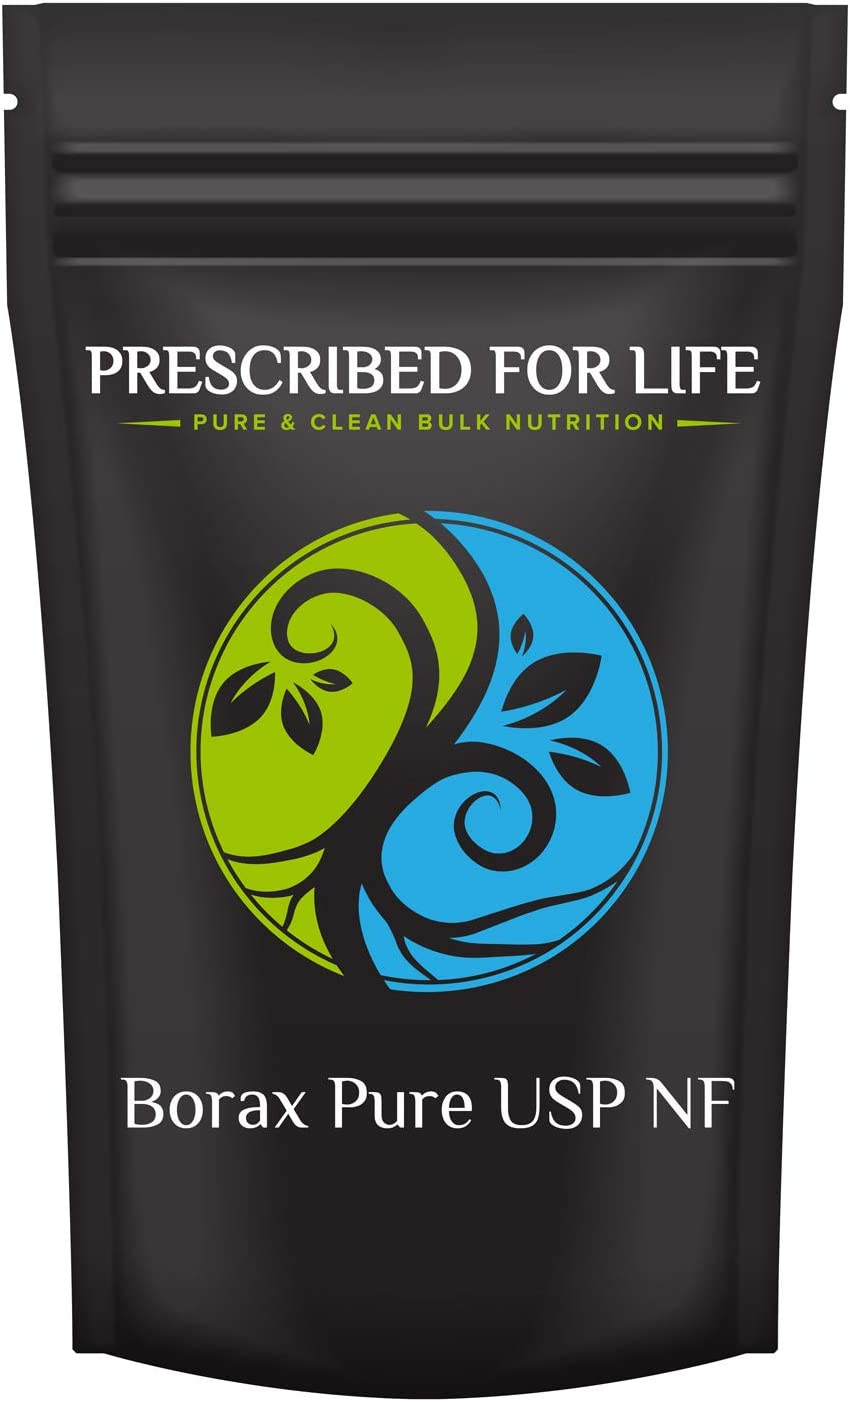 Prescribed for Life Borax - Pure USP-NF Grade Sodium Borate 10 MOL Mineral Fine Powder 70-200 Mesh, 12 oz (340 g)